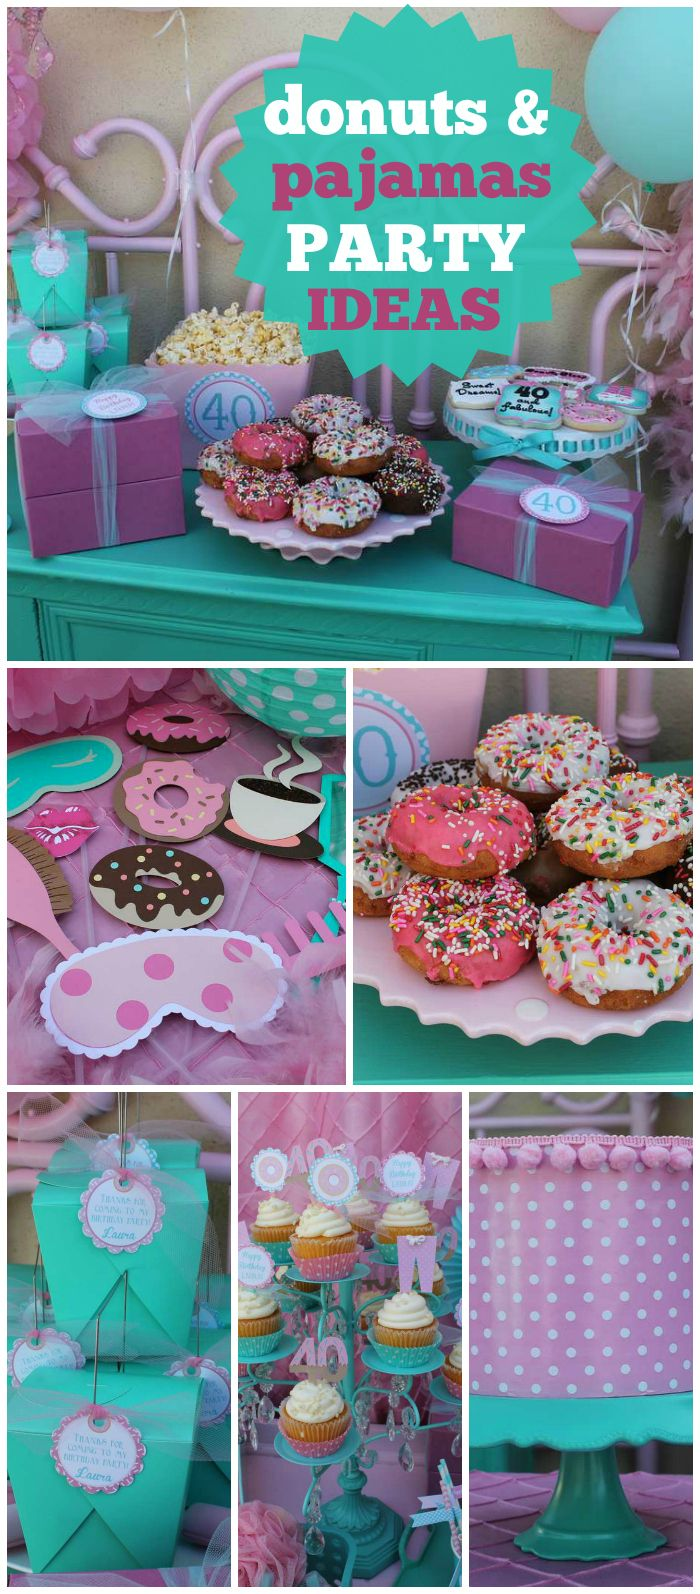 A donuts and pajamas 40th birthday party with sprinkled donuts, fun colors, wine, fun friends & pajama pants!  See more party planning ideas at CatchMyParty.com!